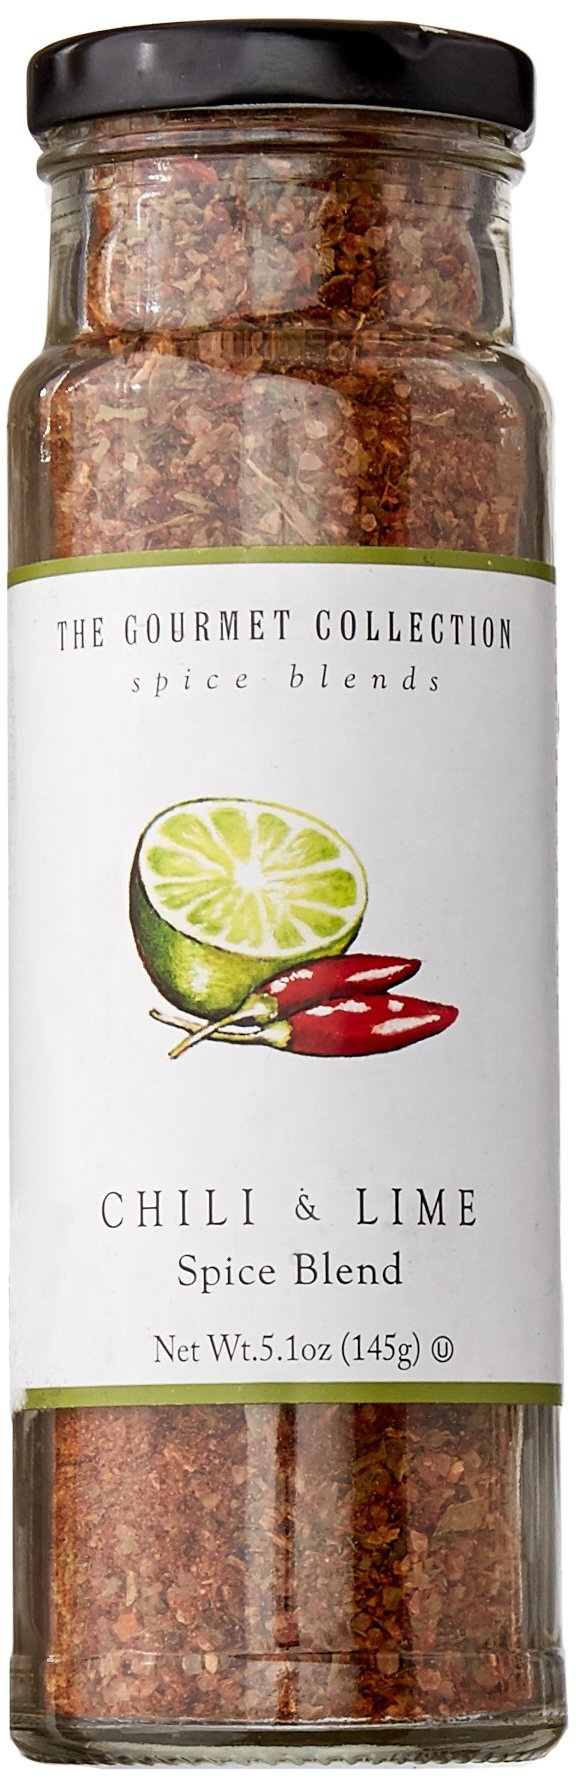 The Gourmet Collection, Chili & Lime Spice Blends (5.4 oz)